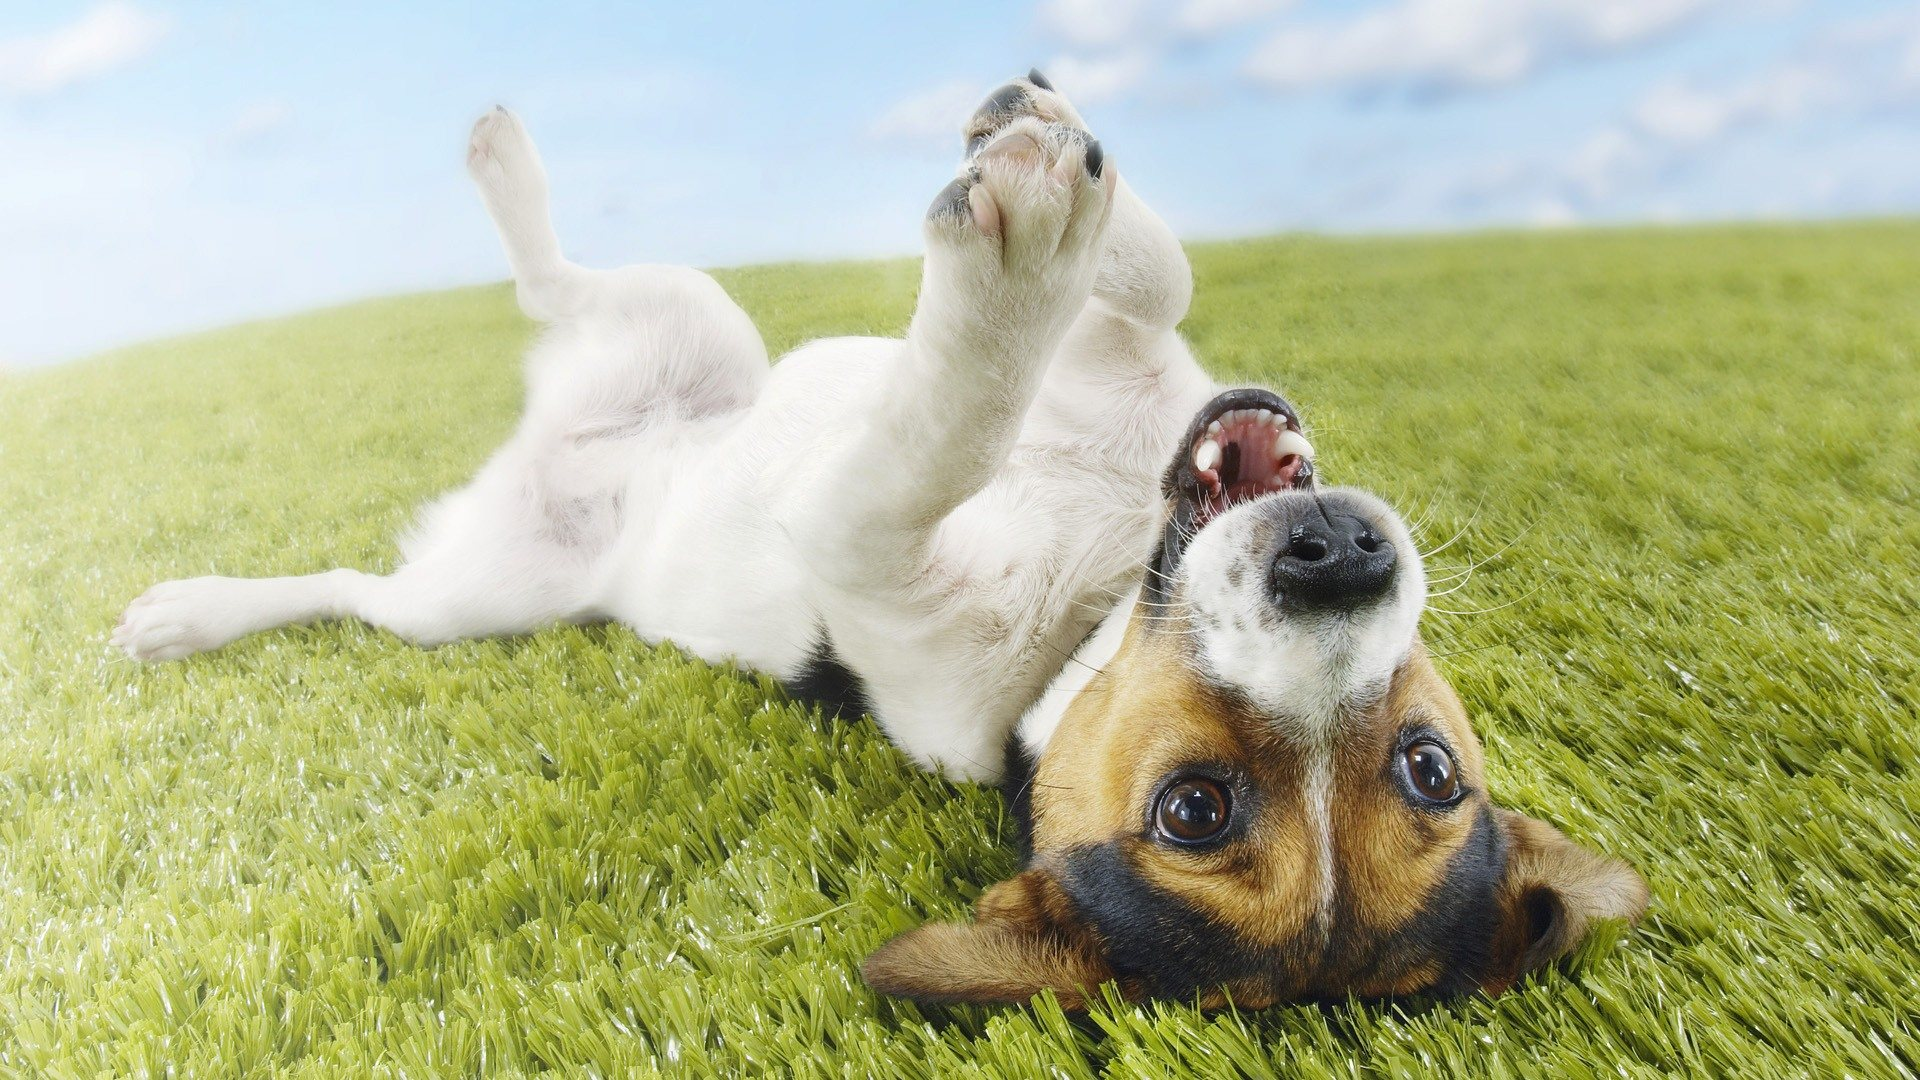 Funny Dog Backgrounds 27 Hd Wallpaper   Funnypictureorg 1920x1080